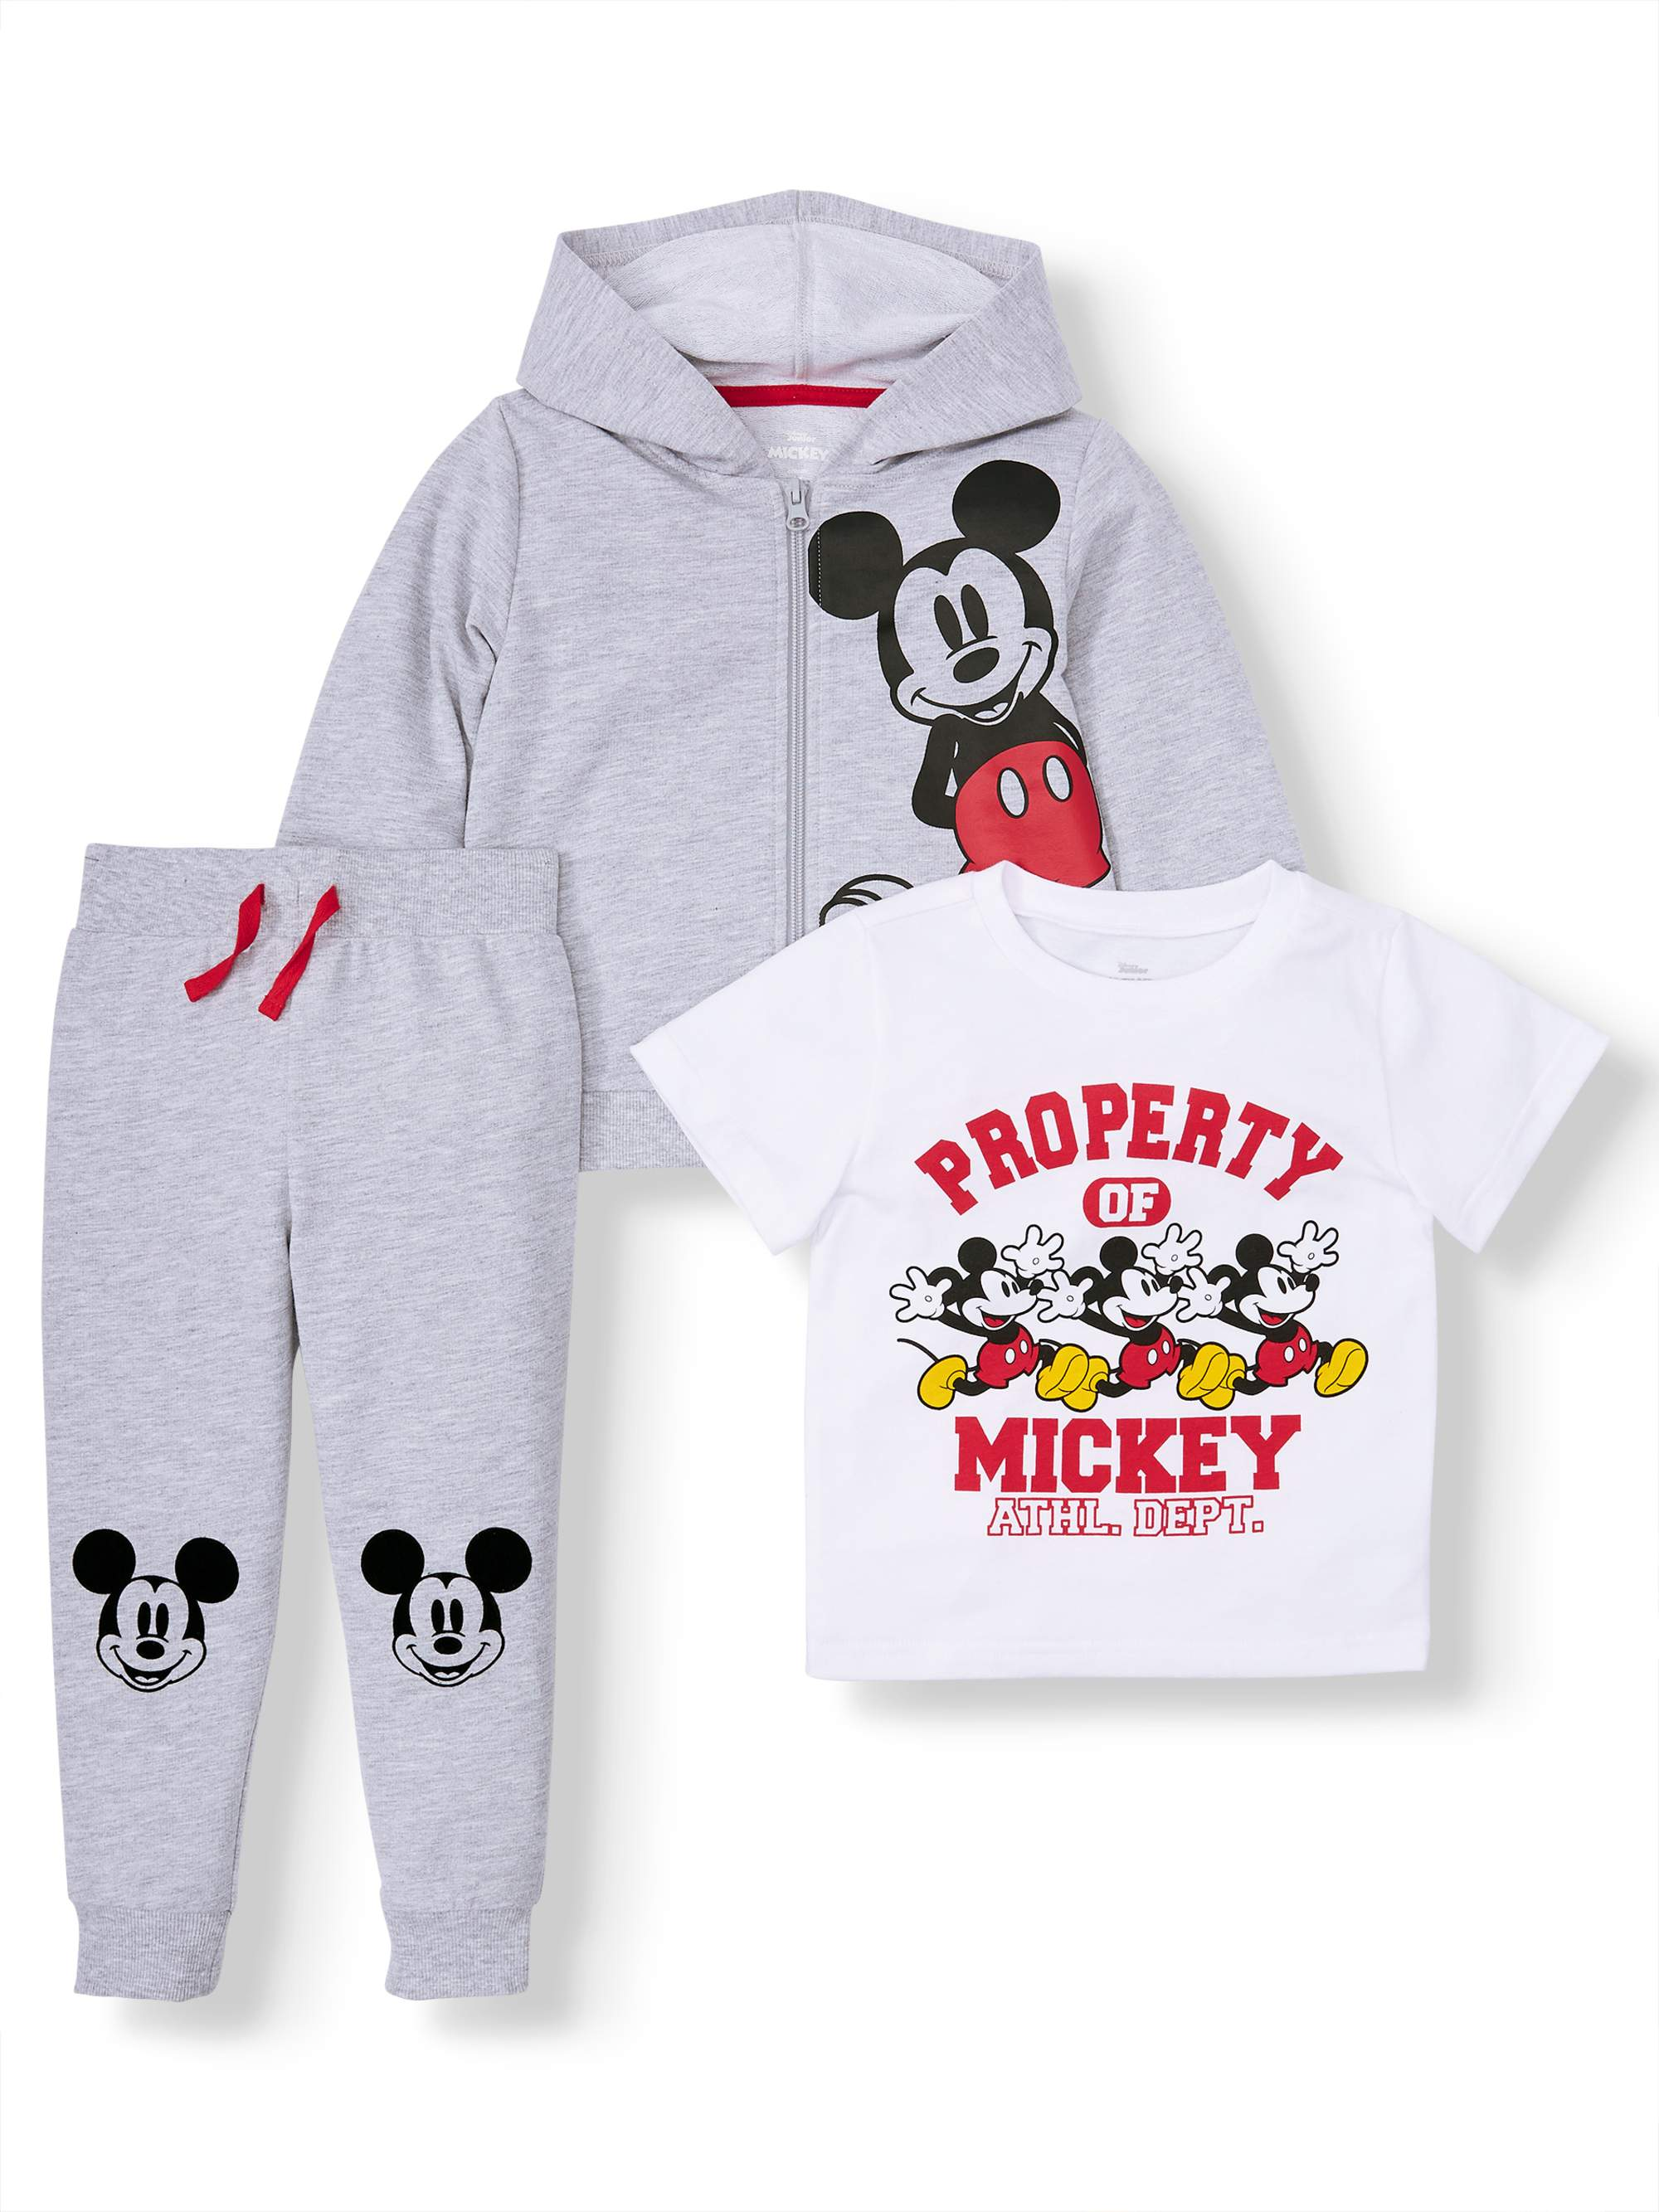 DISNEY MICKEY MOUSE BABY ZIP UP SWEATER SIZE 12 18 24 MONTHS NEW!